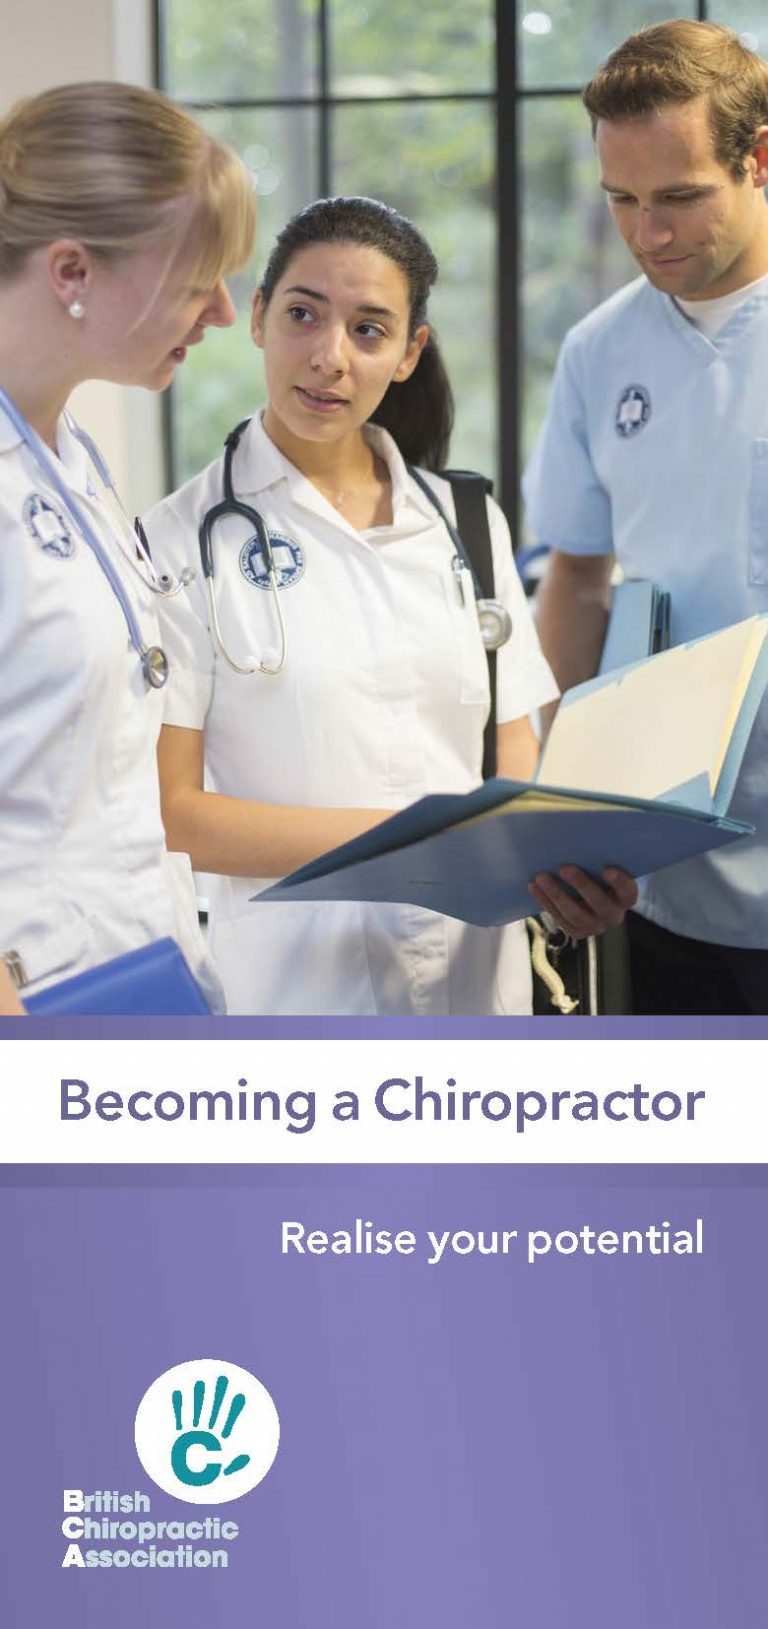 why i want to become a chiropractor Will fults shows you what it's like to be a chiropractor, why he loves his job and what steps you need to take if you would like to be a chiropractor too.